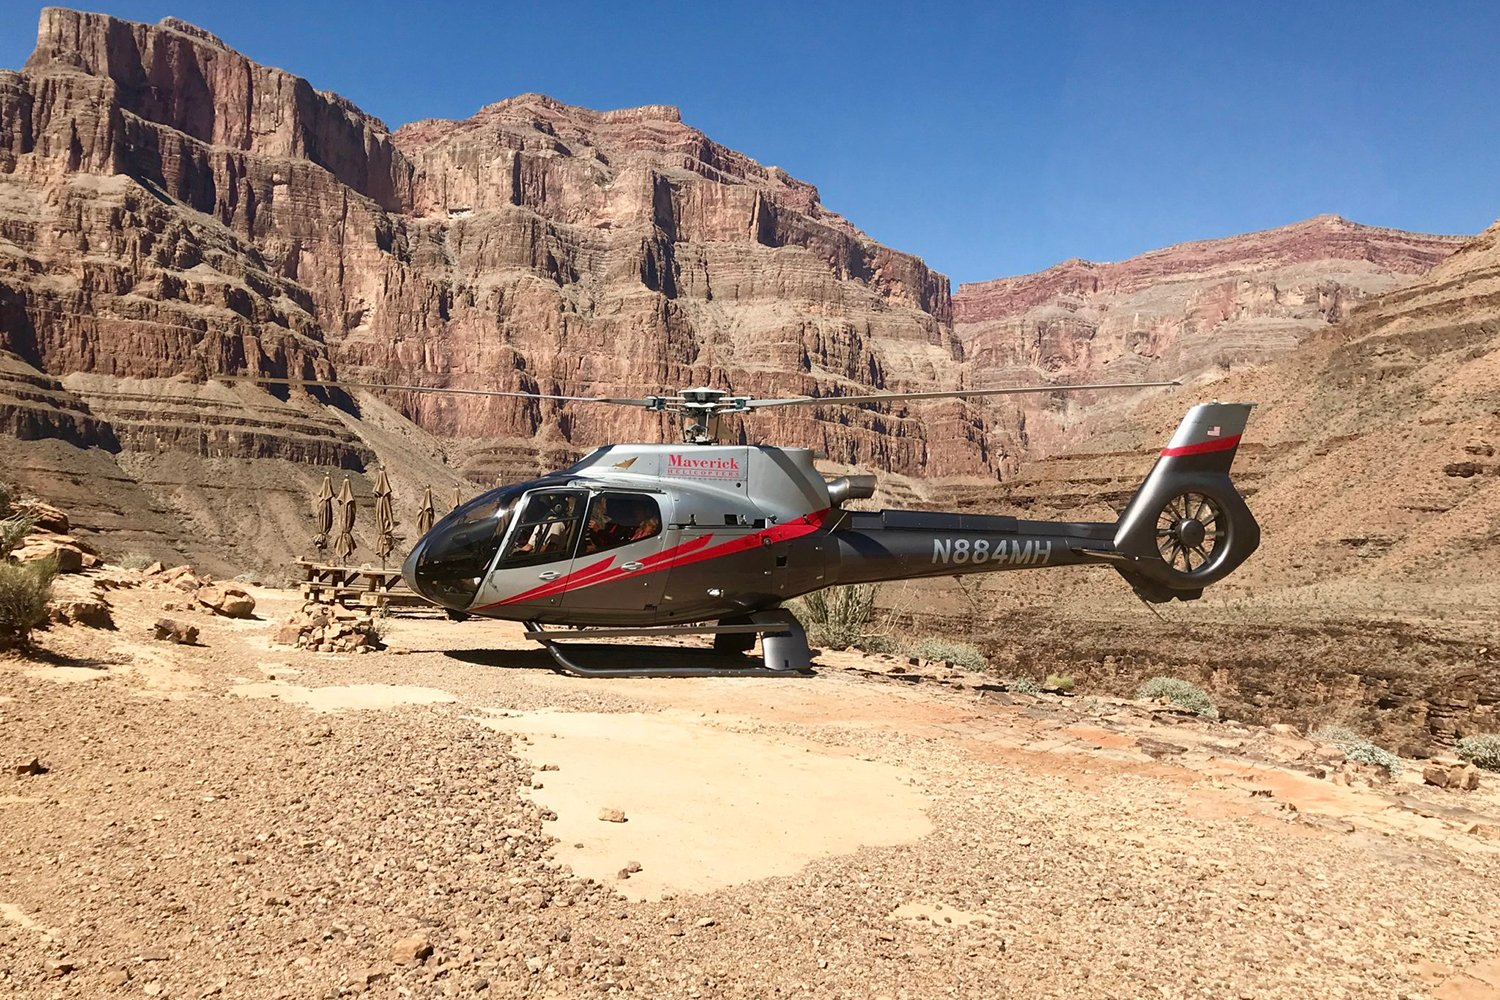 helicopter tour of the Grand Canyon from Las Vegas